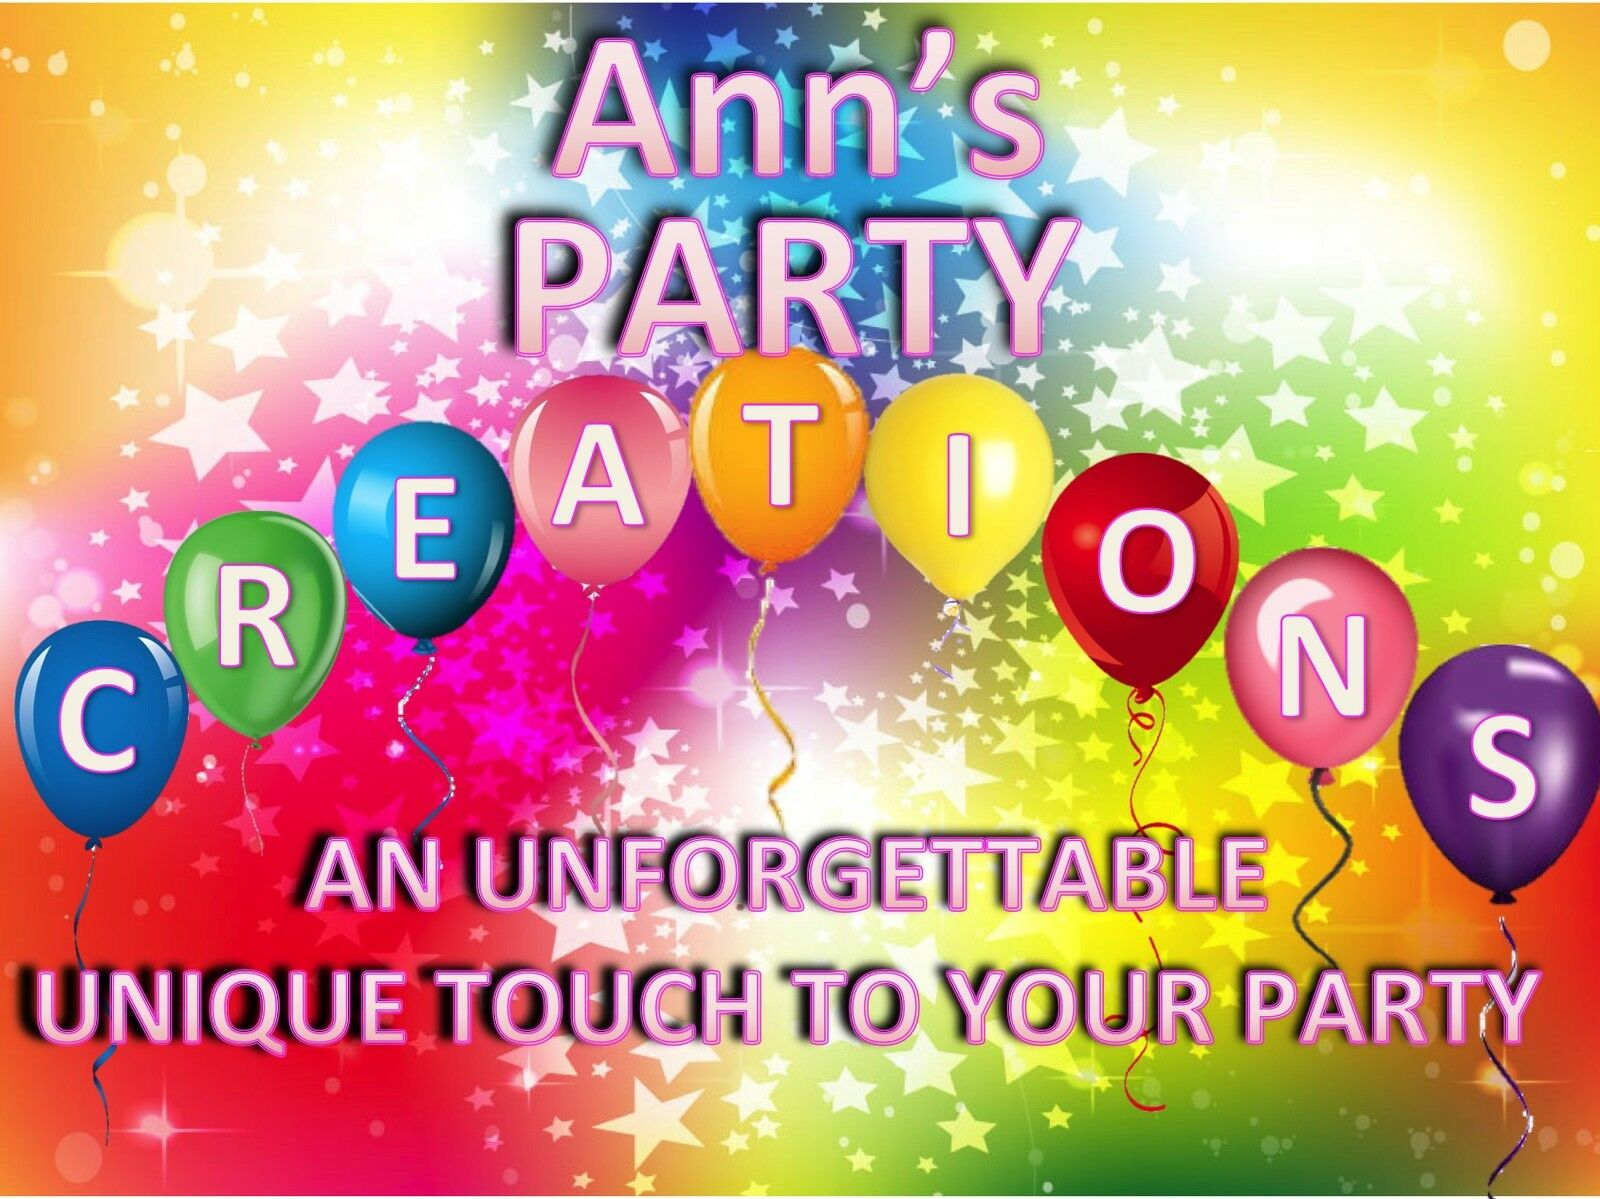 Ann's Party Creations